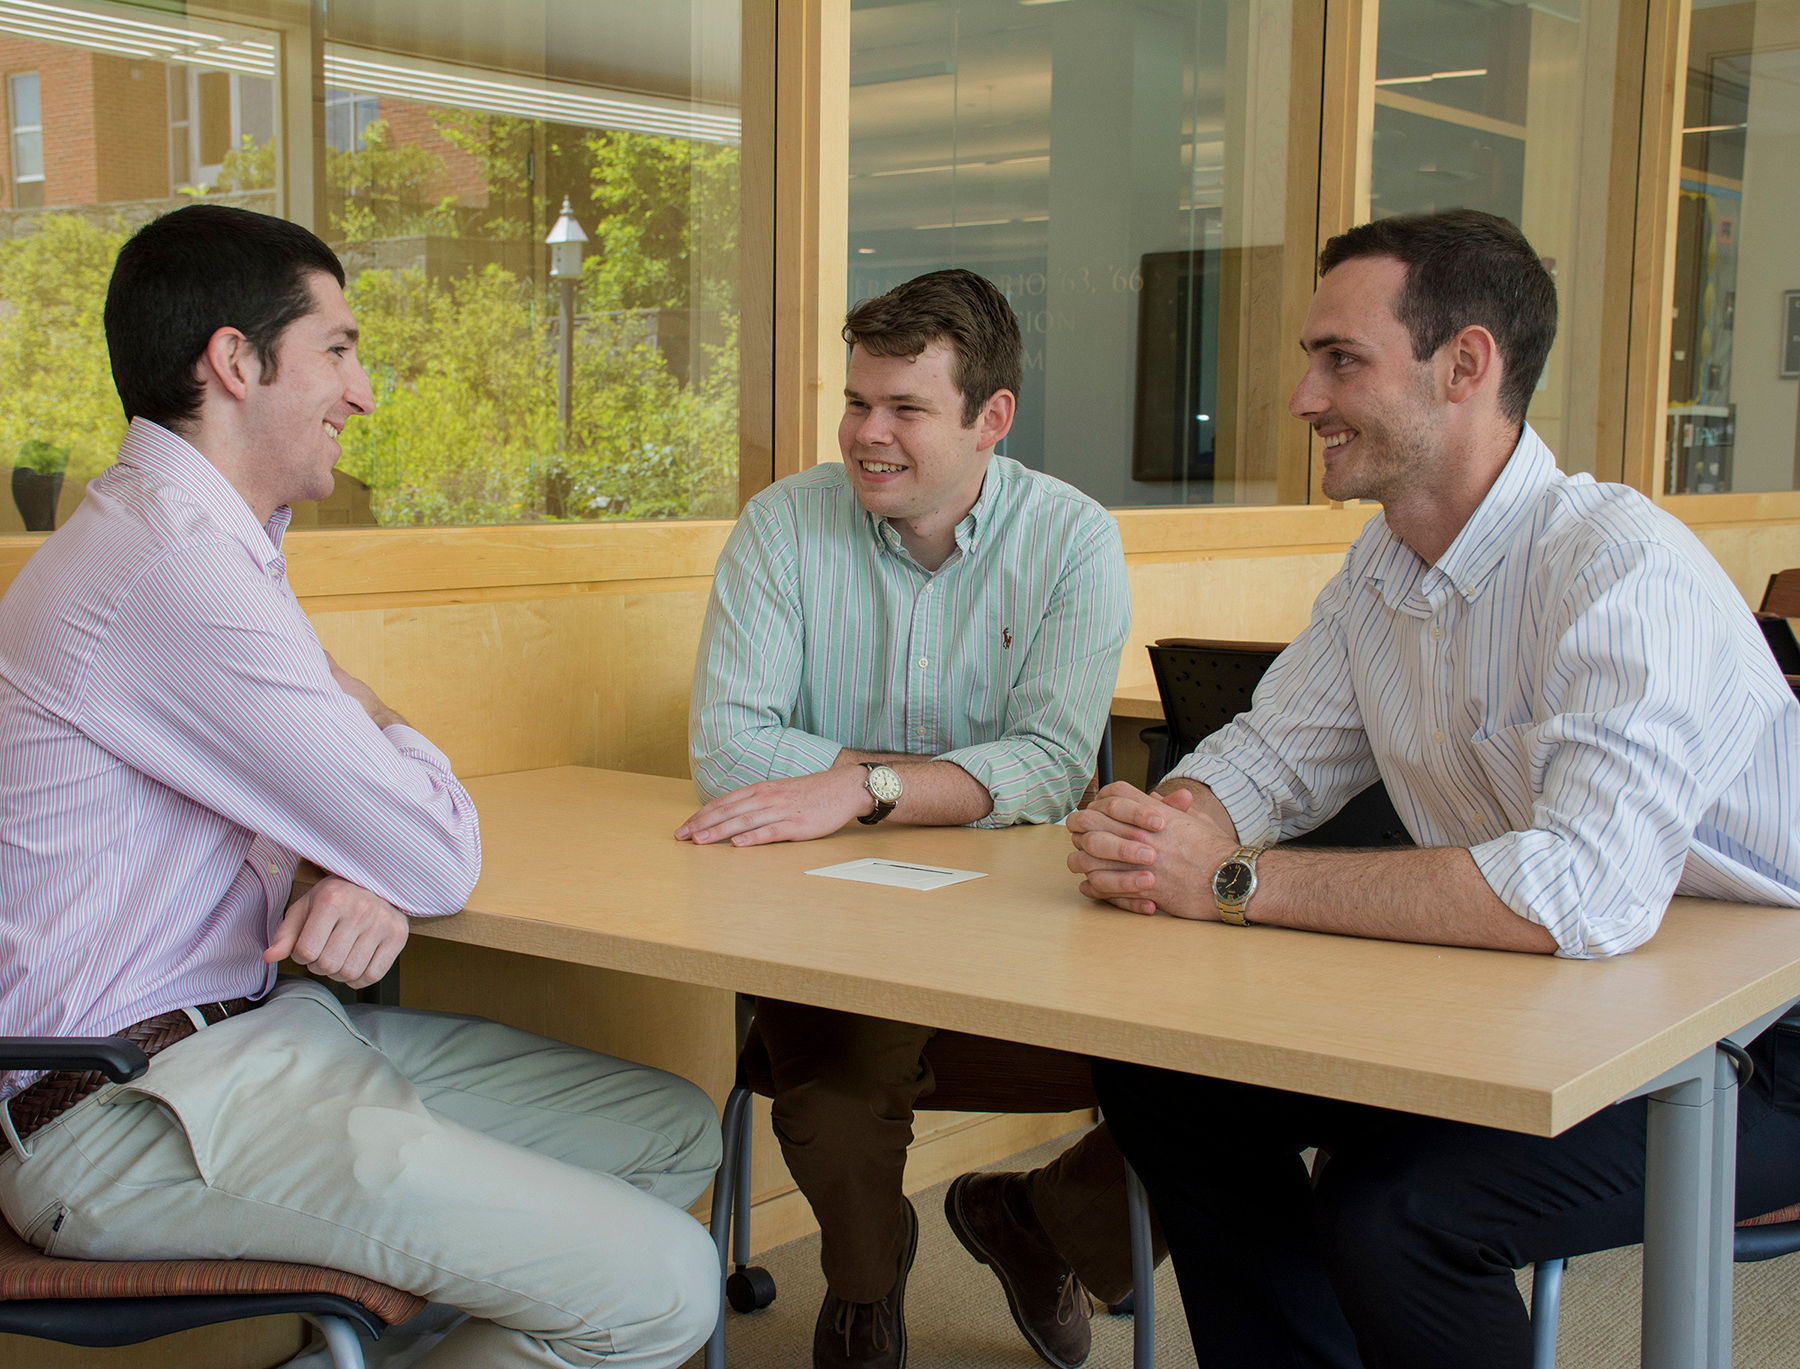 FROM LEFT, Nicholas DaSilva, Kenneth Rose and Benjamin Barlock, doctoral students at the University of Rhode Island's College of Pharmacy, which is part of the Academic Health Collaborative, launched a drug development company, Alcinous. They discuss their venture in the pharmacy building on the Kingston Campus in early June. /COURTESY NORA LEWIS